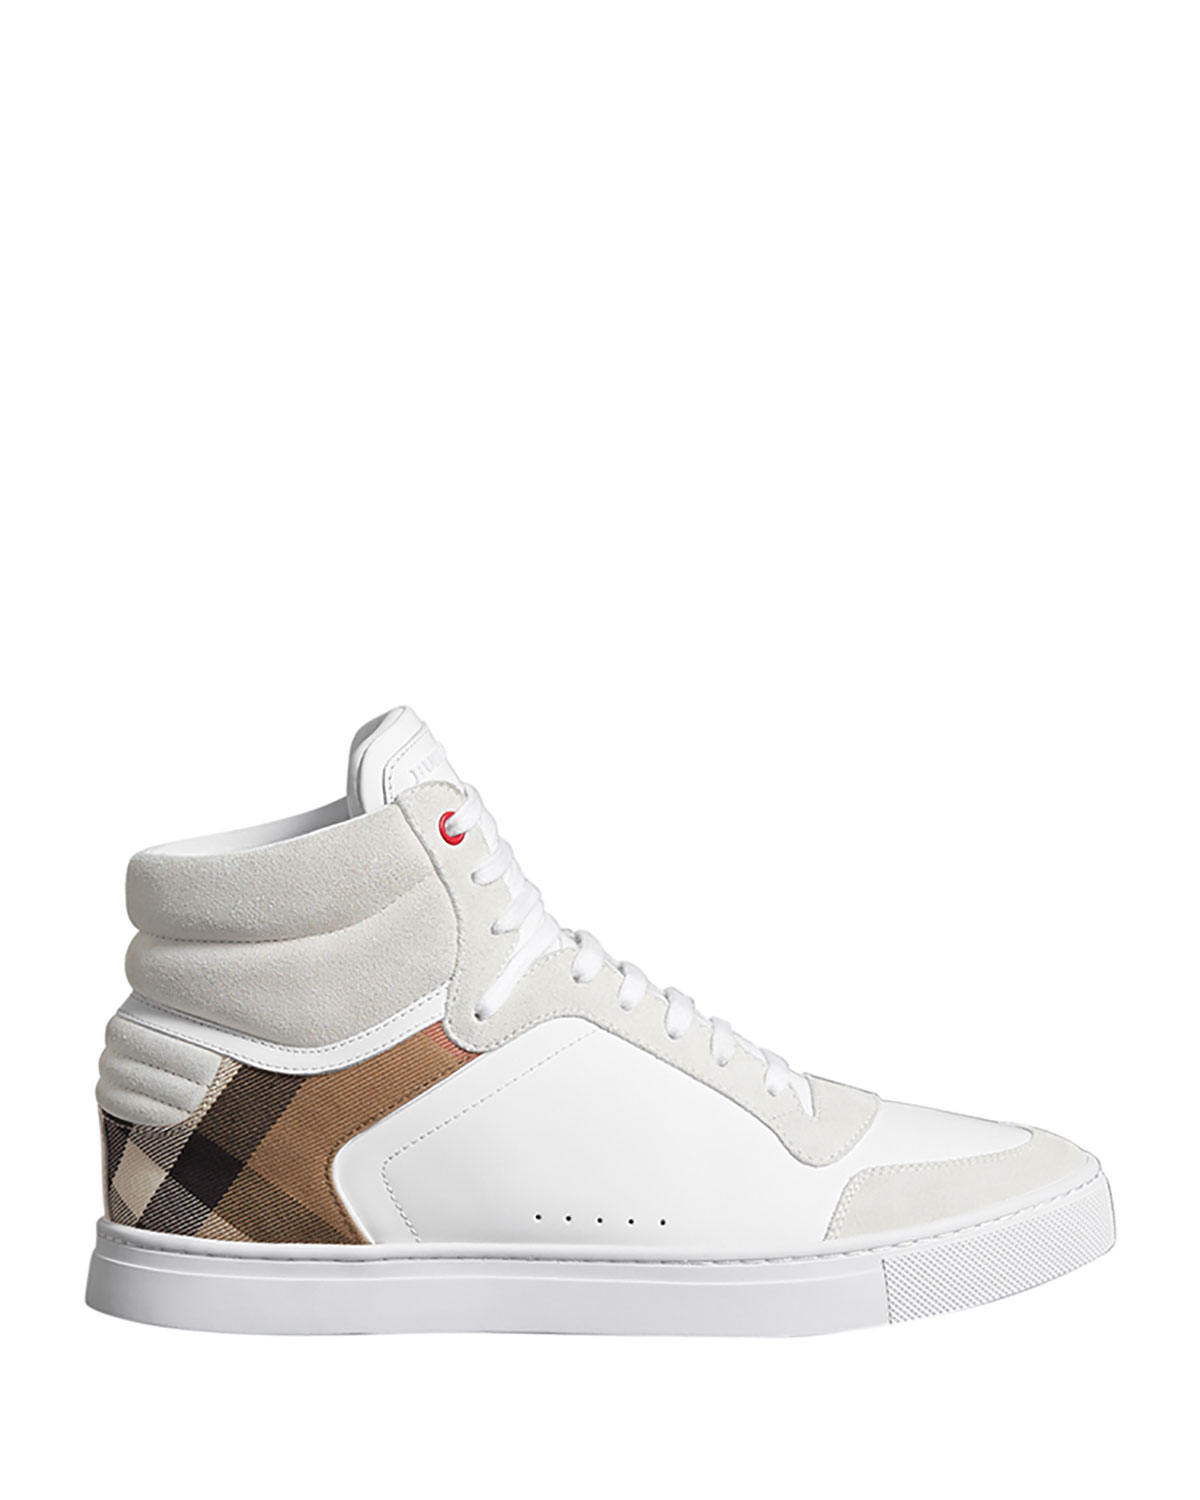 35d66839304 Burberry Men s Reeth High-Top Leather Sneakers